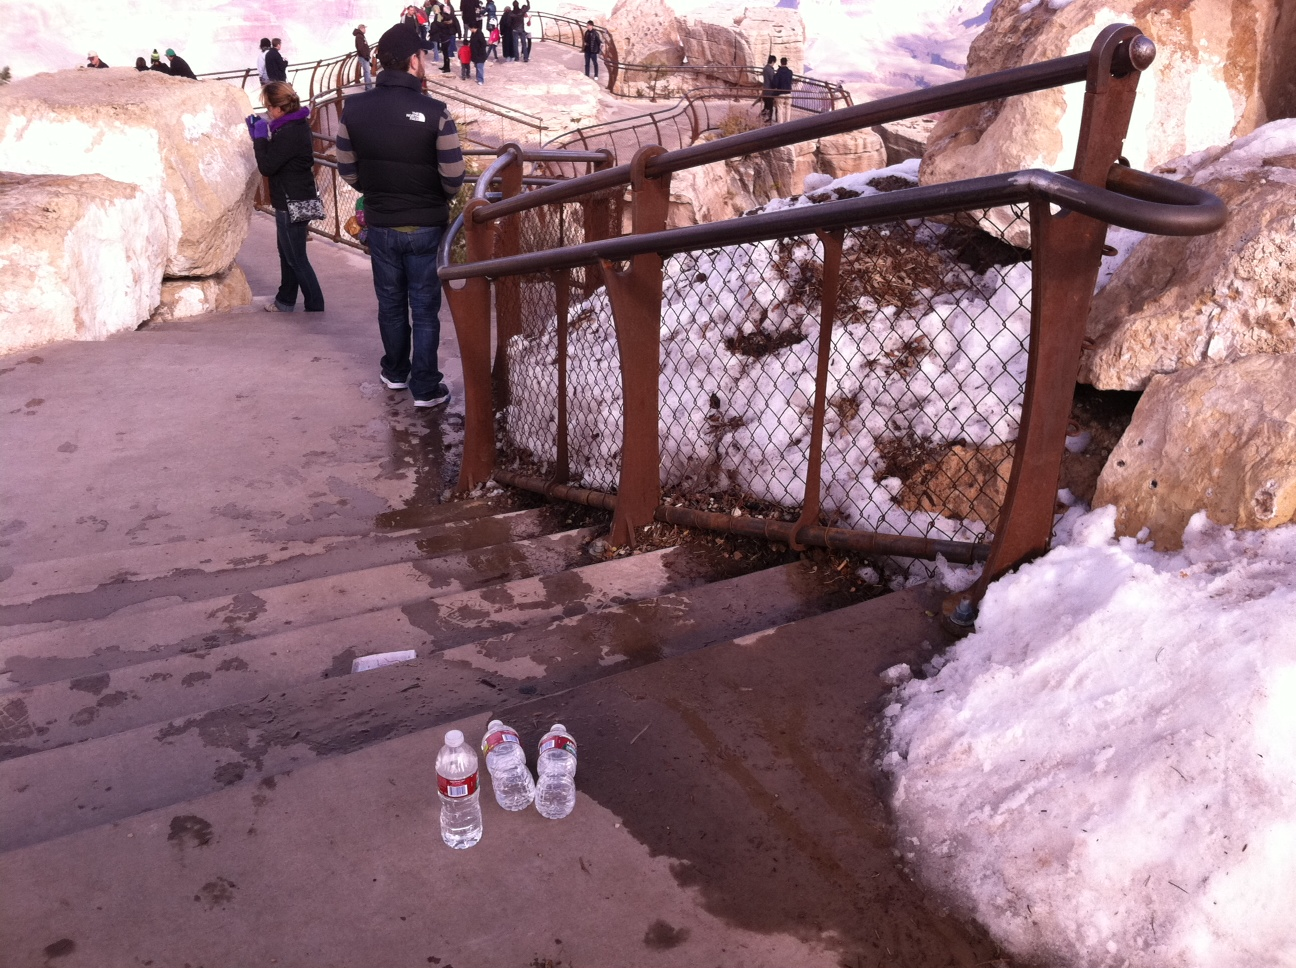 Disposable water bottles make up about 30 percent of the total waste stream at the Grand Canyon, according to the park.